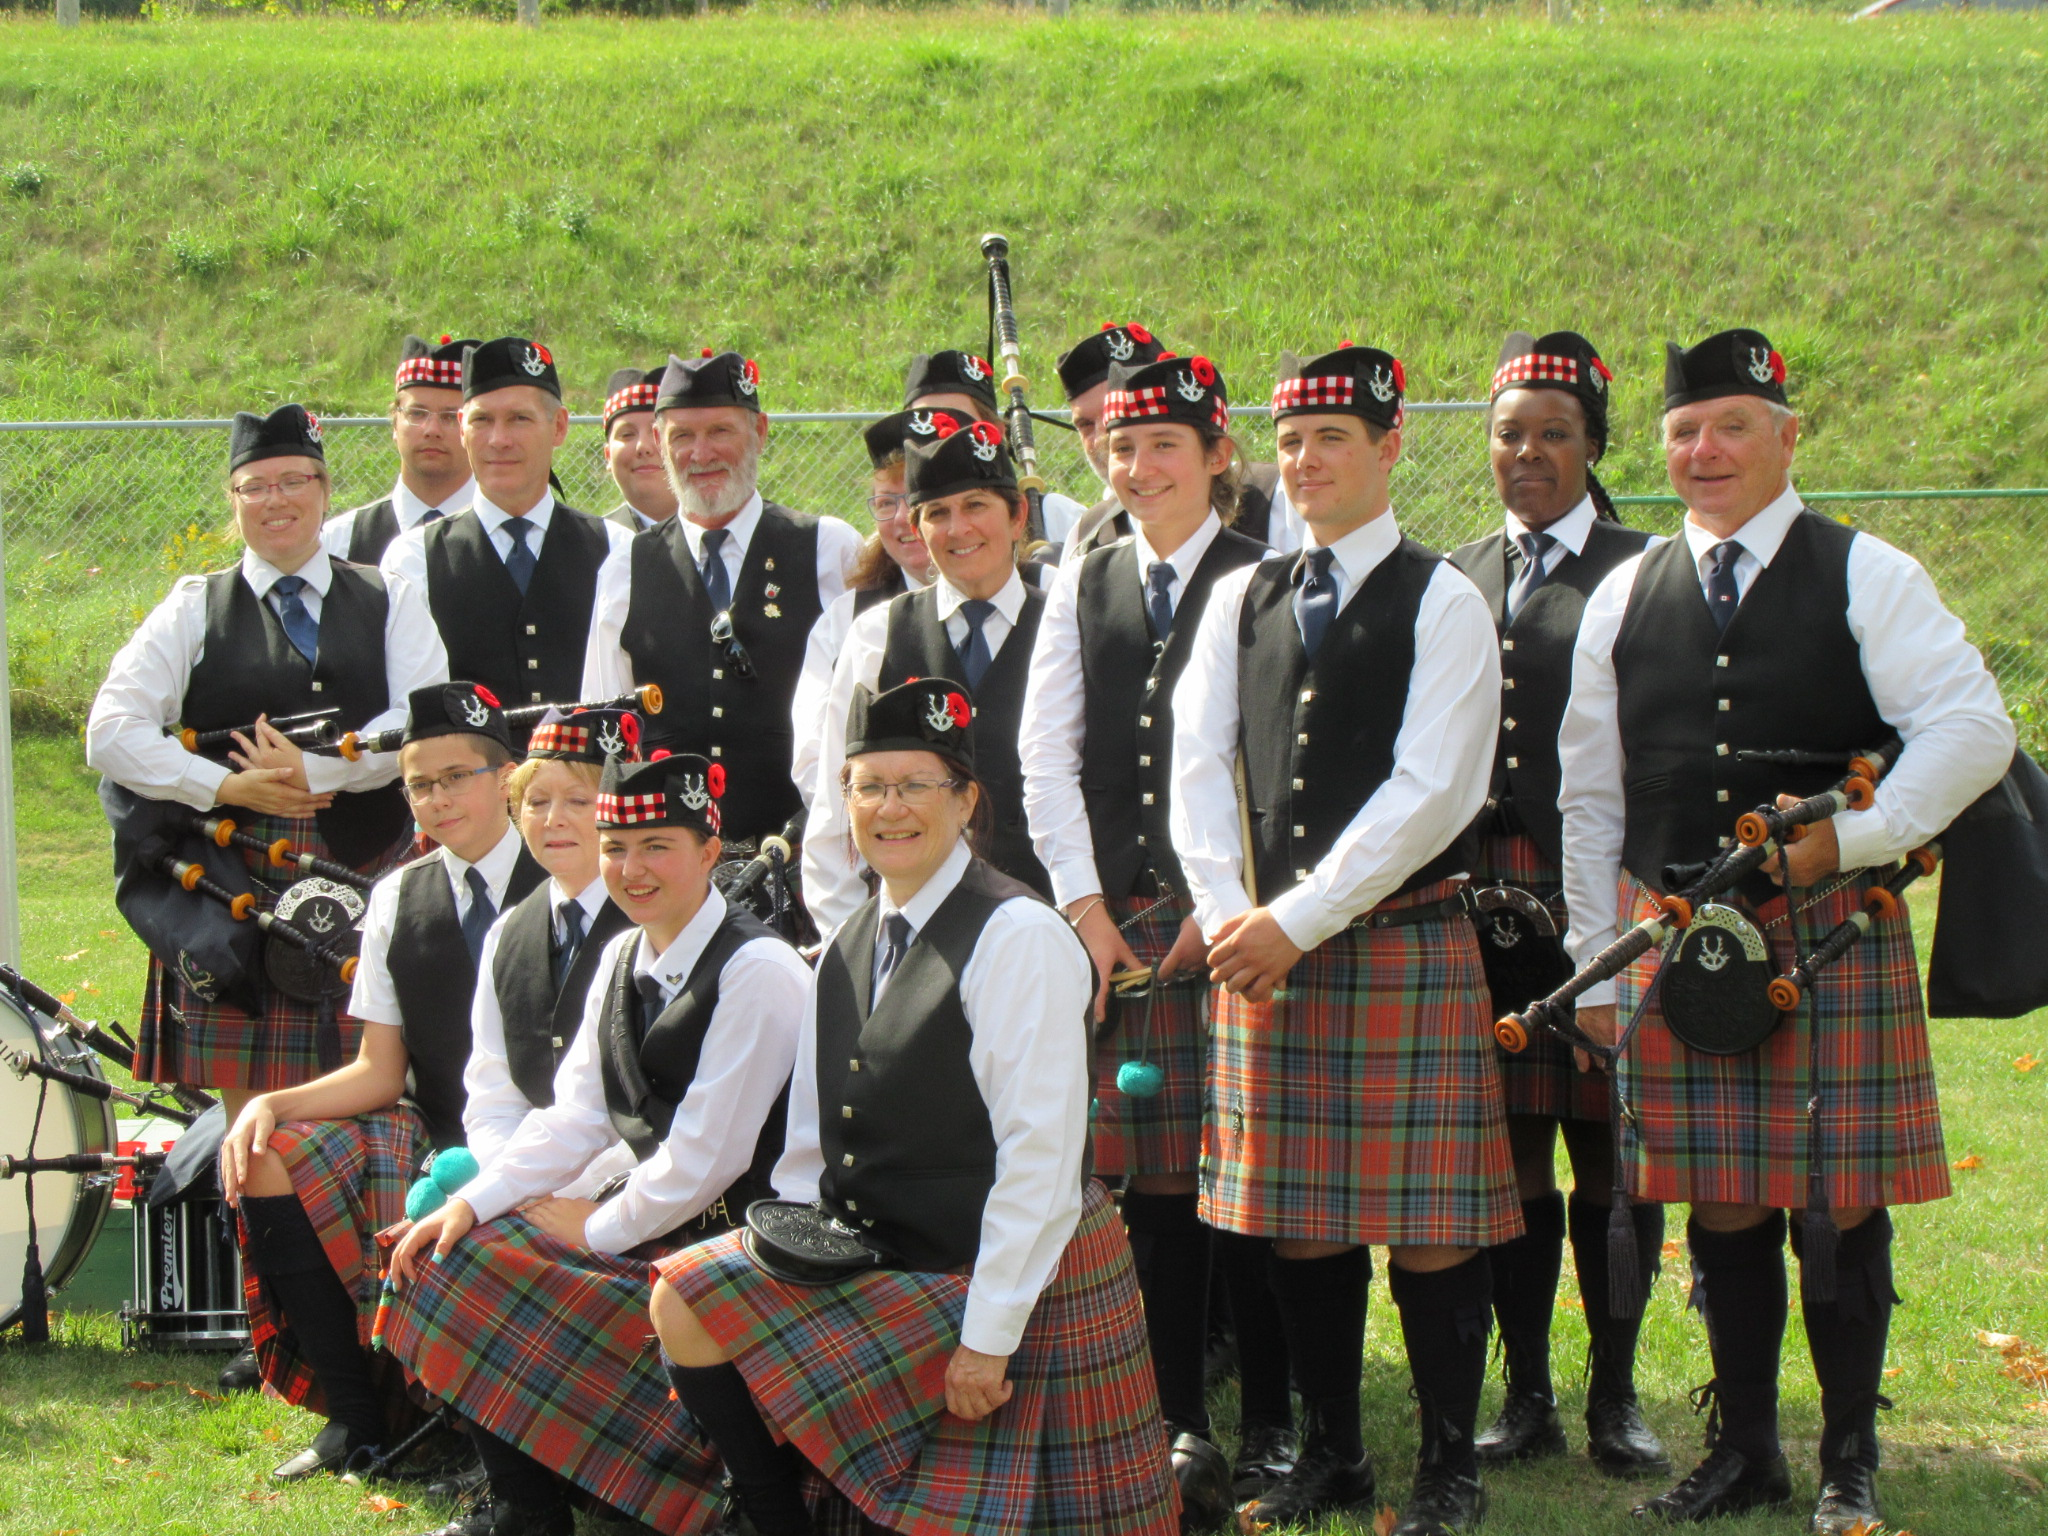 White Heather Pipes and Drums - Aurora Cemetery Candlelight/Drumhead Ceremony